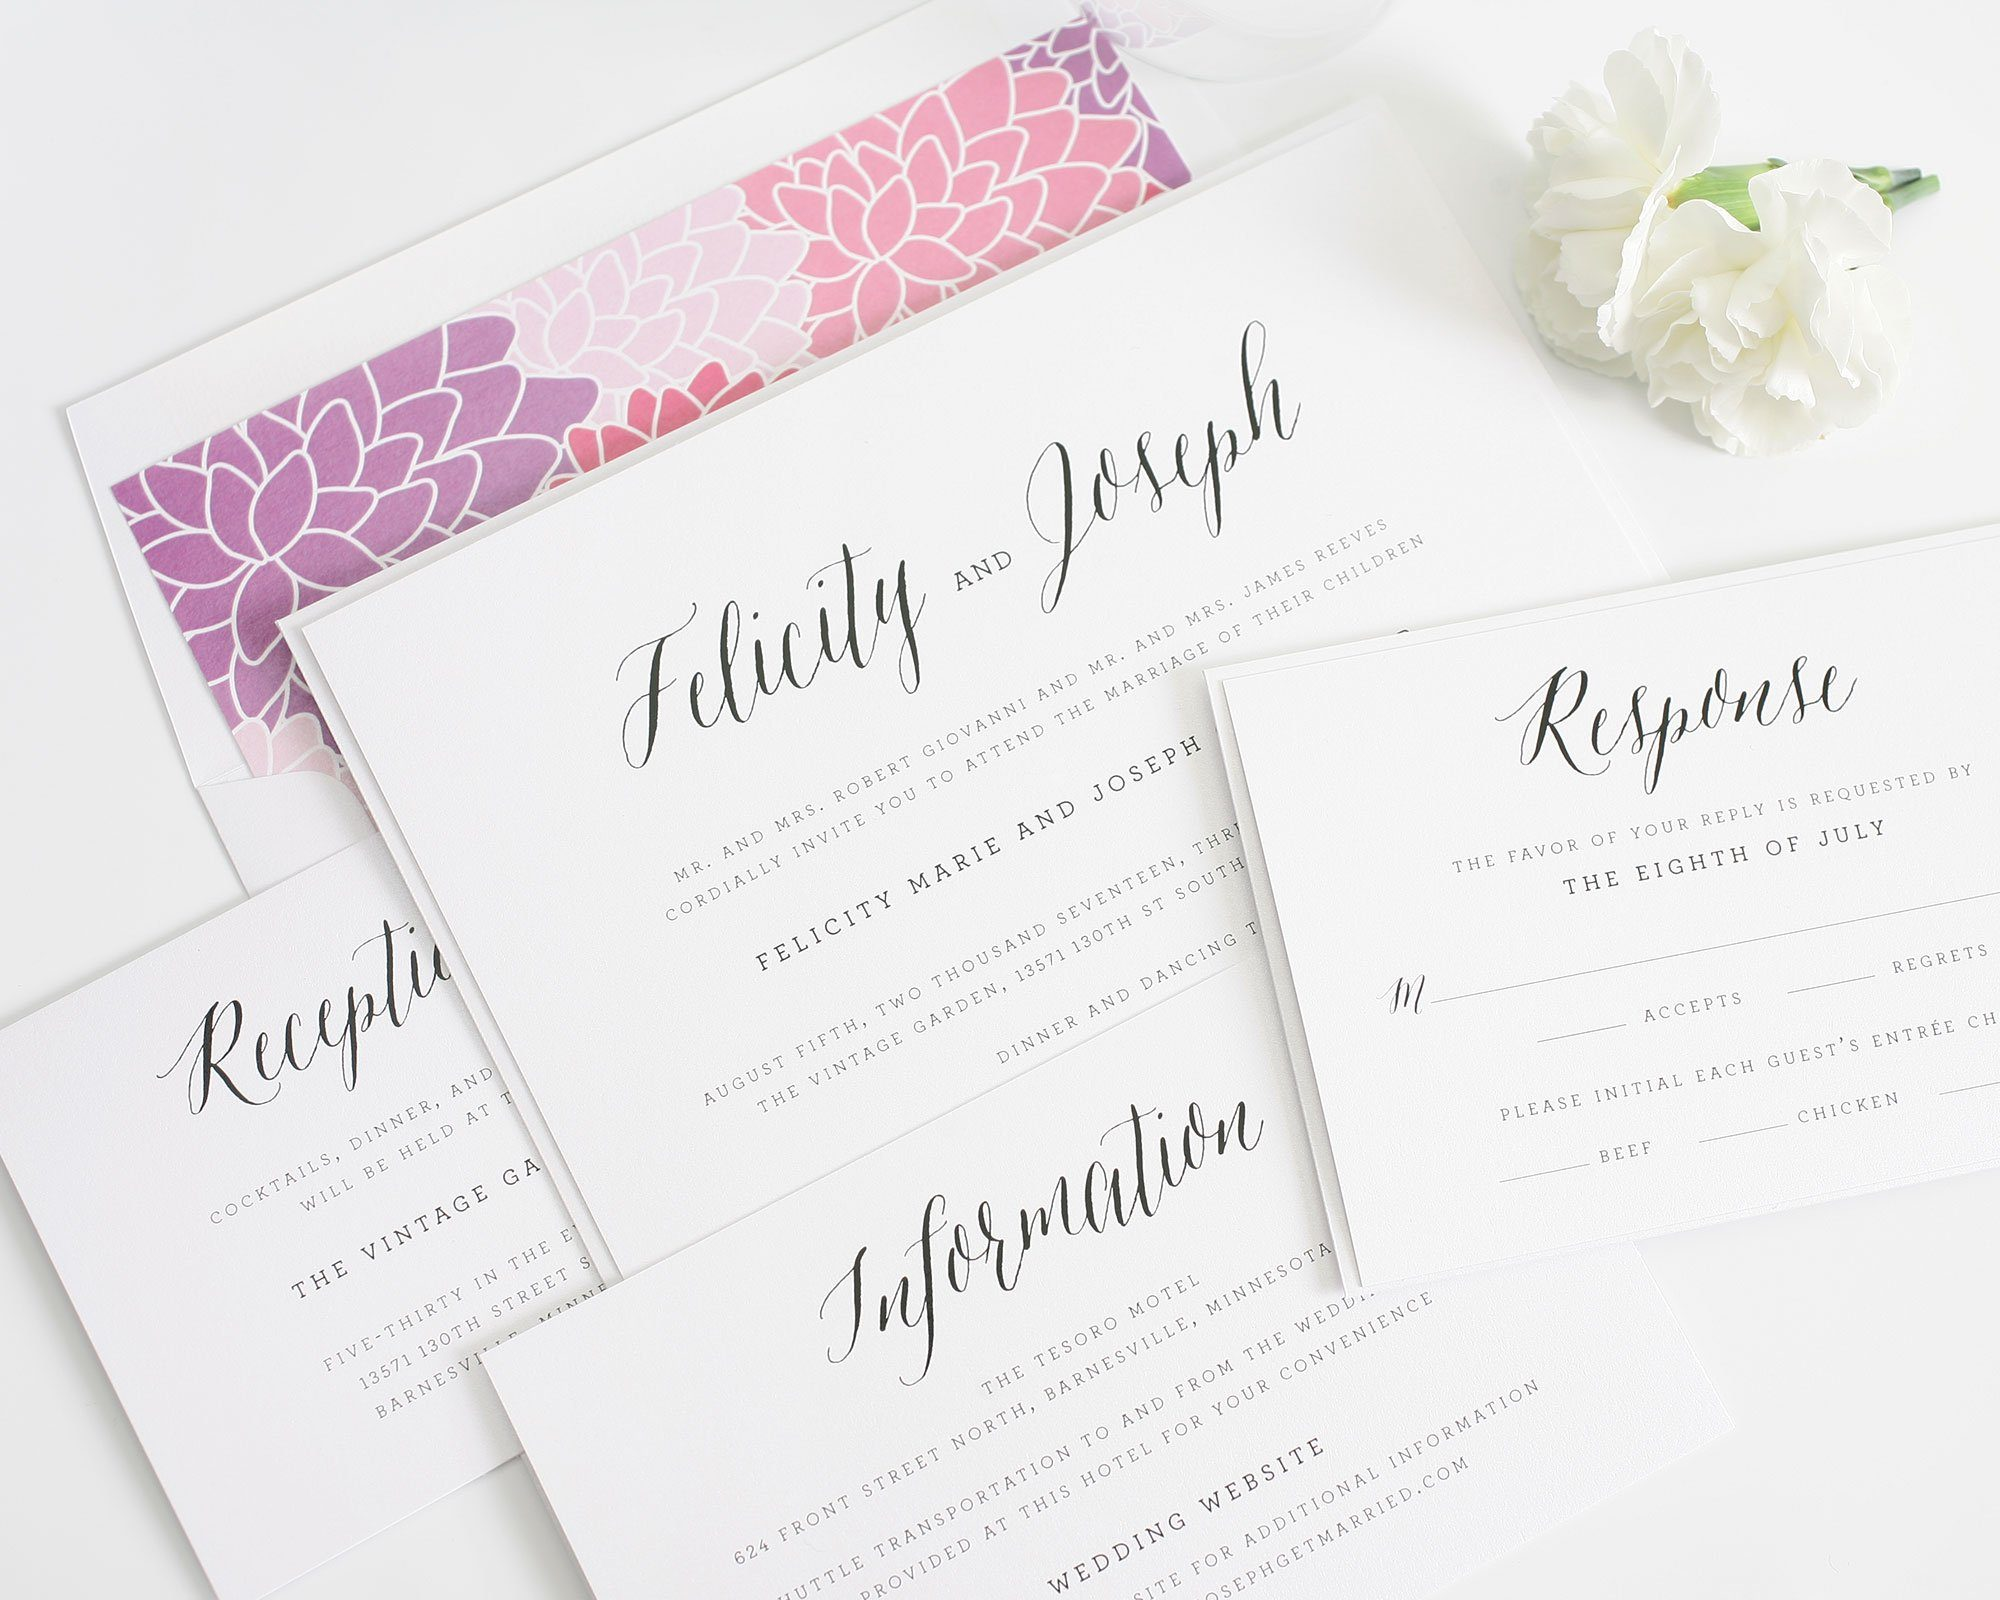 Whimsical Rustic Romance Wedding Invitation with Floral ...